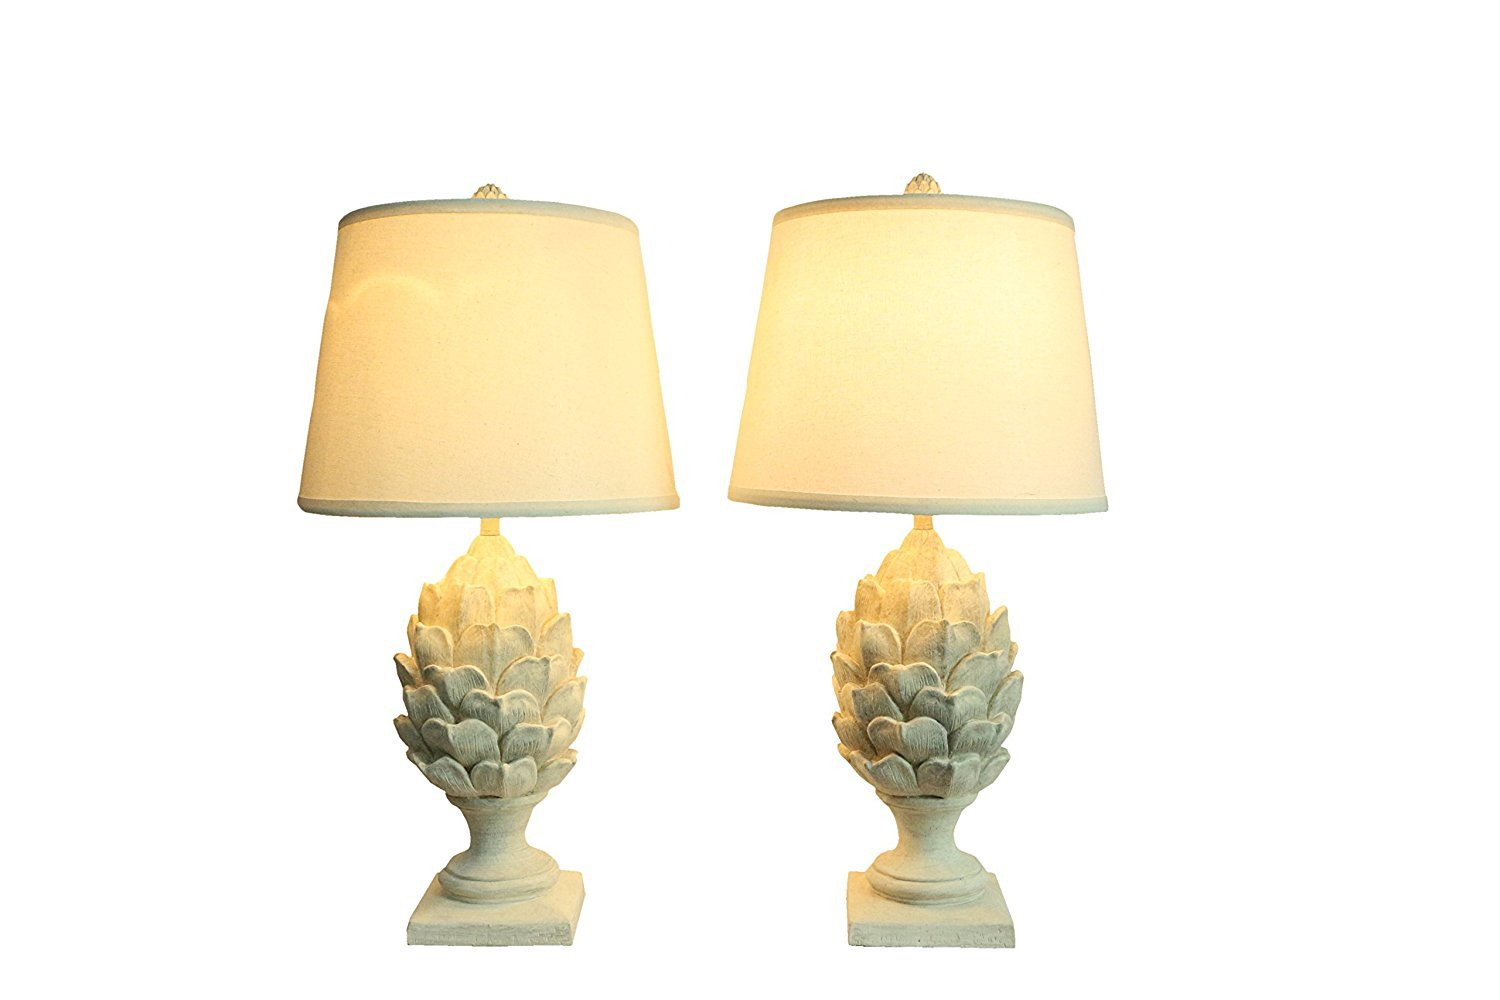 Set of 2 Artichoke Table Lamps, Weathered White